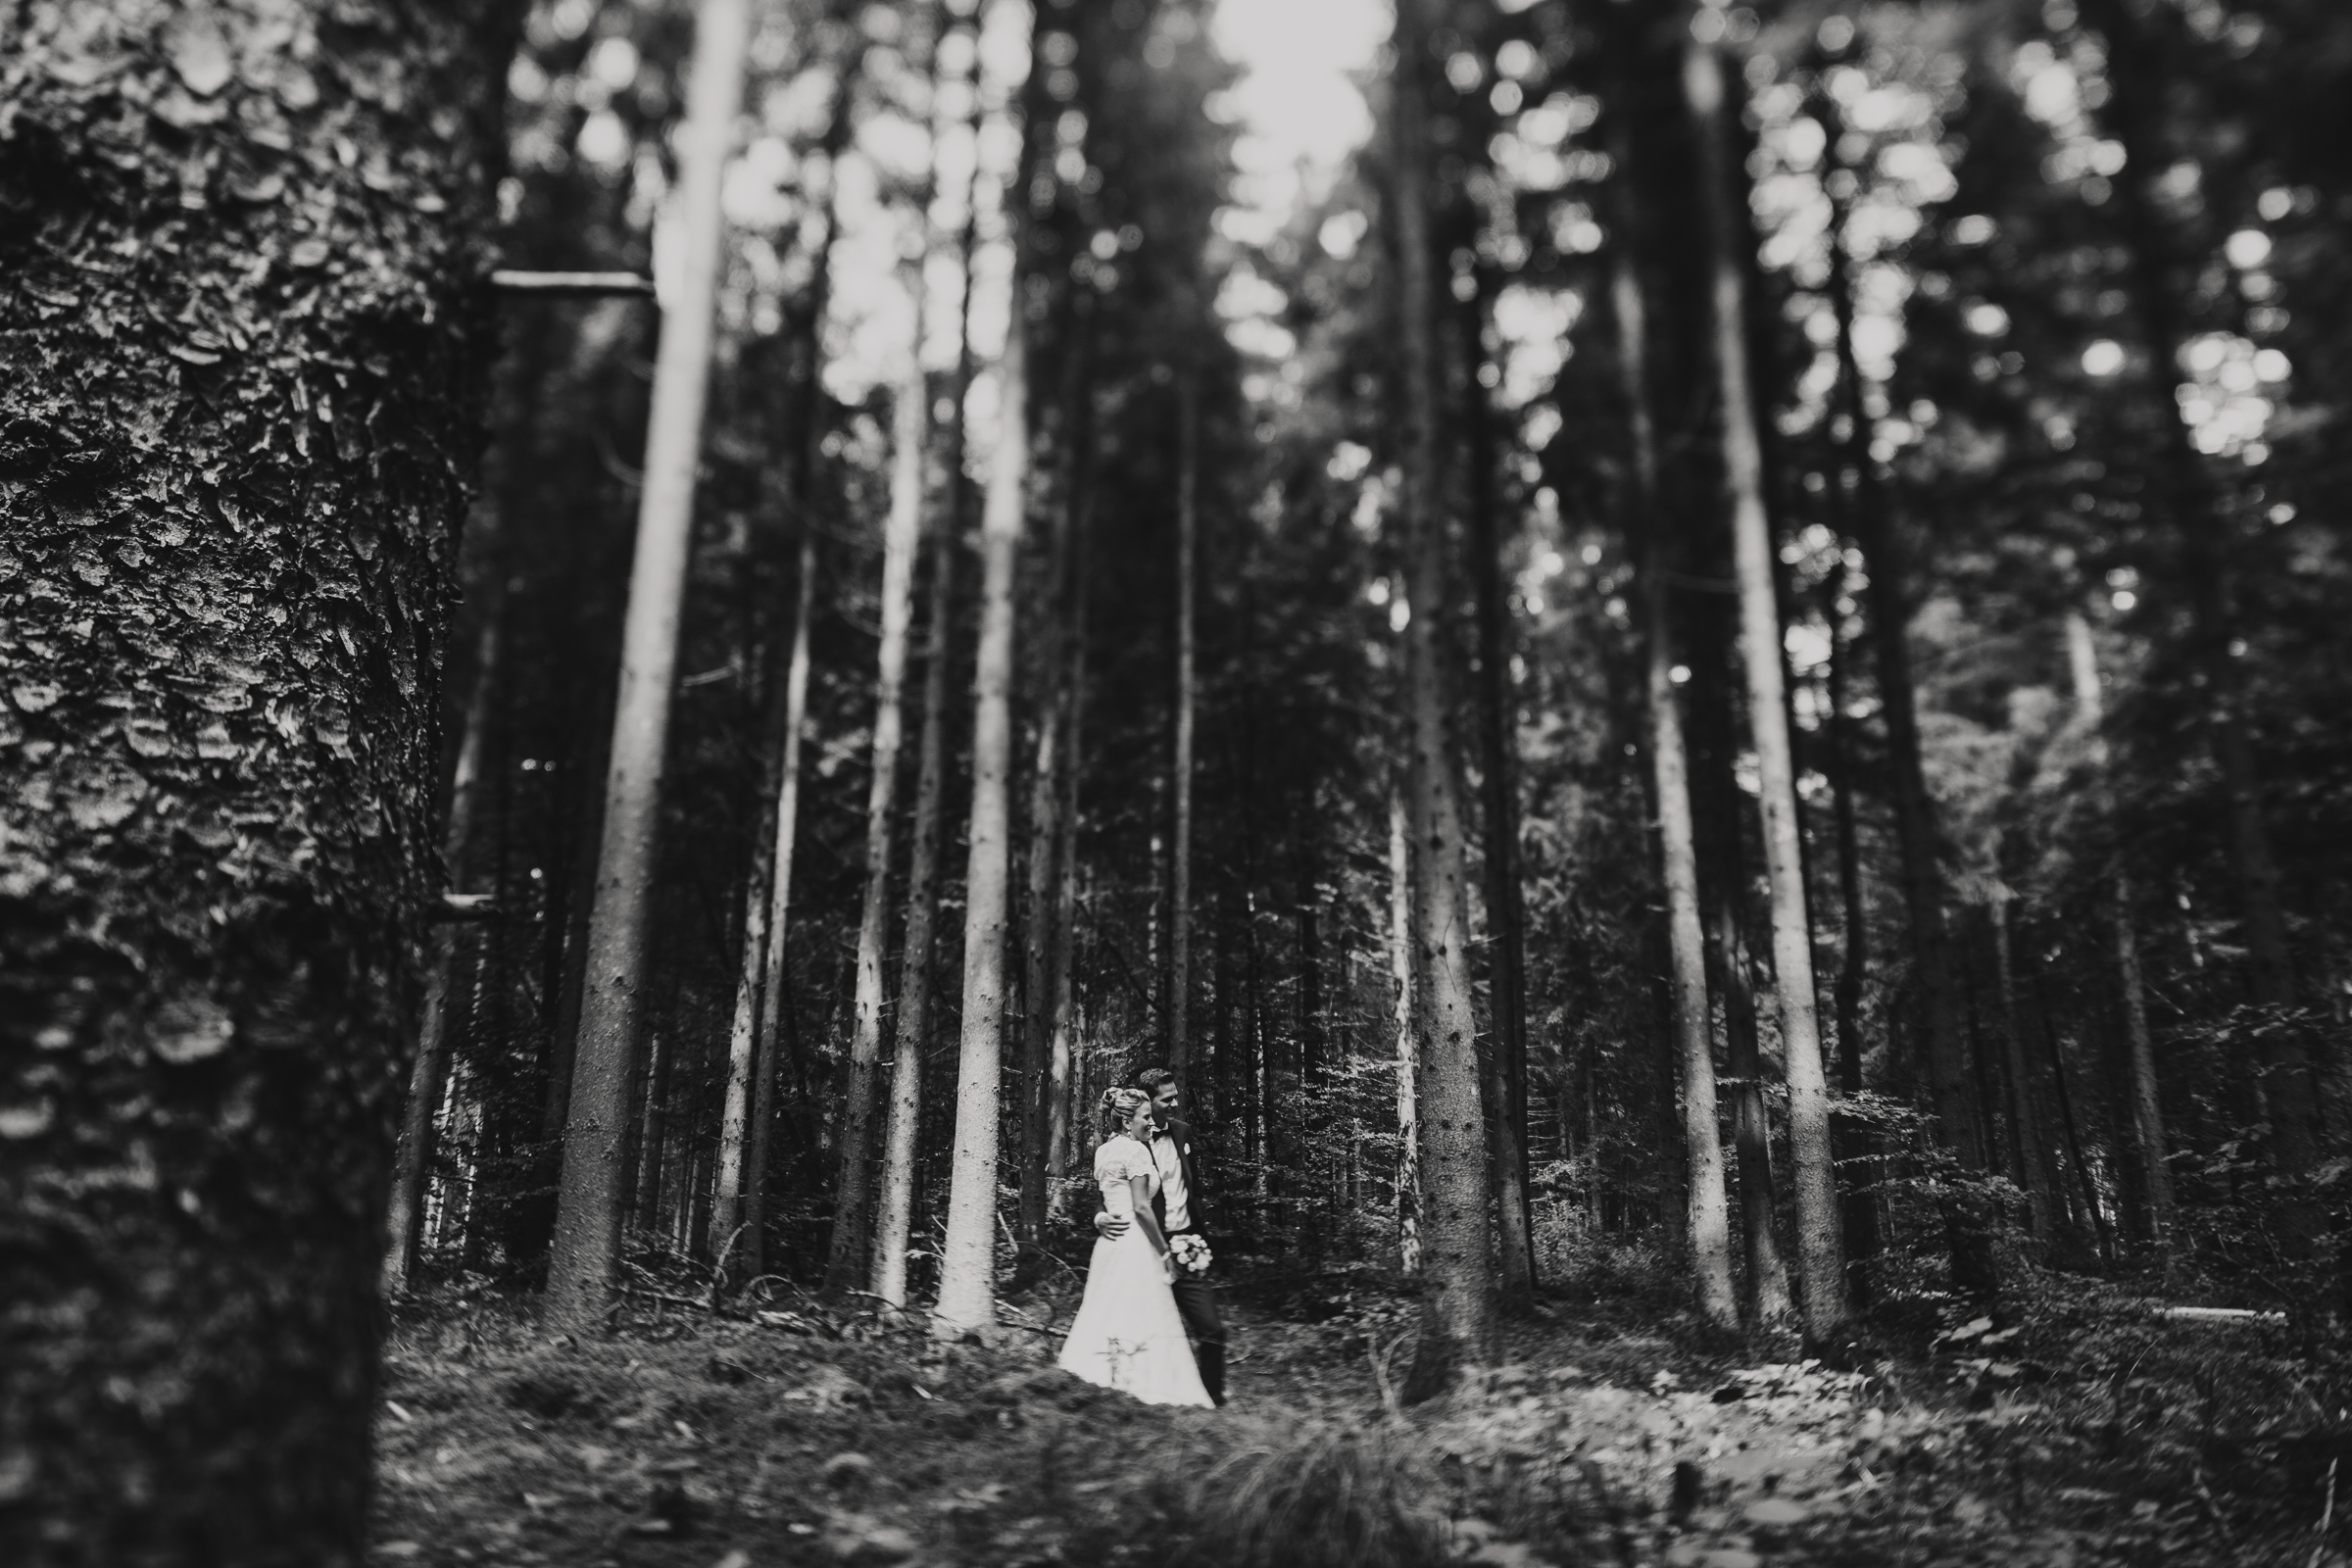 bride and groom portrait in a forest setting of tall trees- photo by FineArt Weddings | Photography